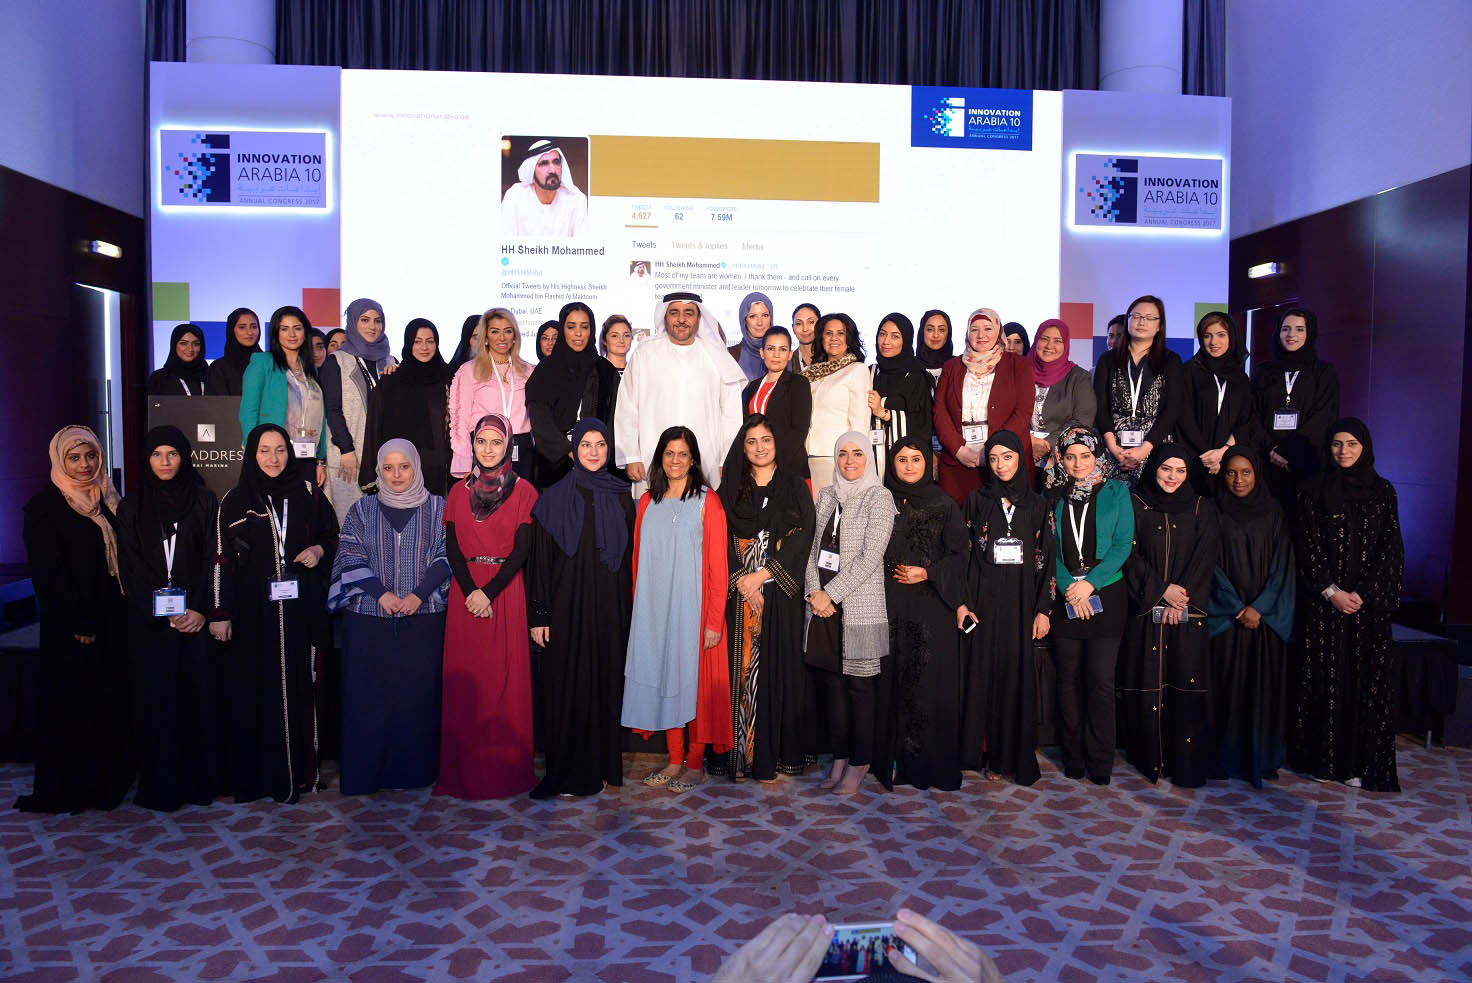 Innovation Arabia 10 develops roadmap for building societies based on knowledge, innovation and sustainability